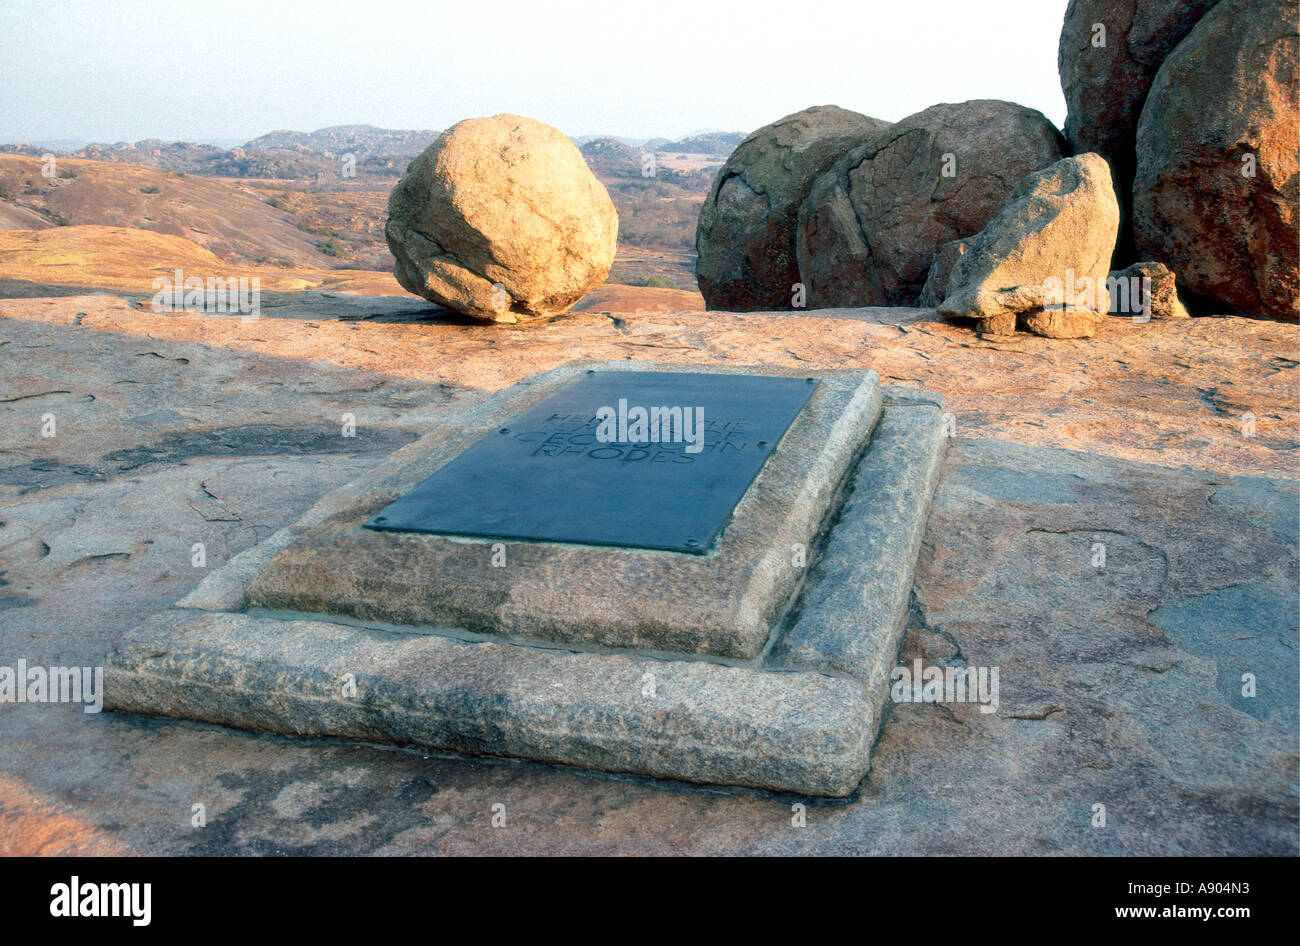 The grave of Cecil John Rhodes at World s view in Matobo National Park Zimbabwe Africa Stock Photo